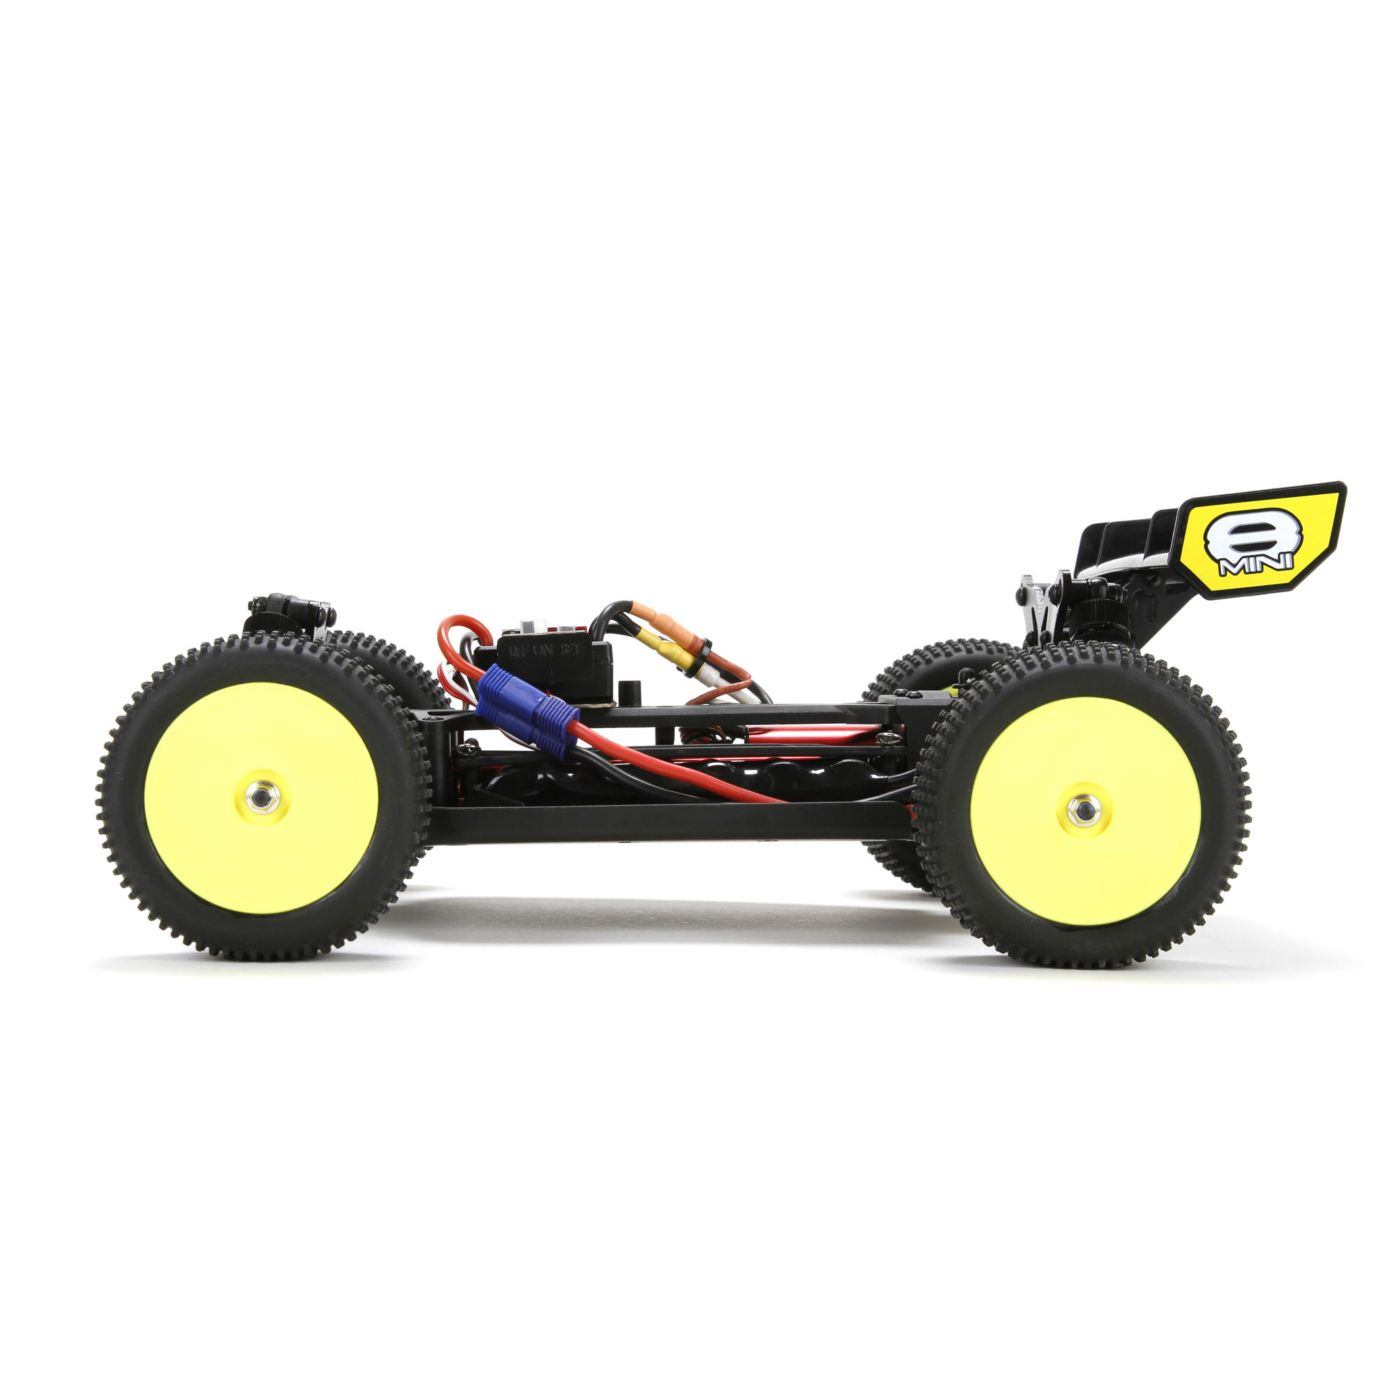 1/14 Mini 8IGHT 4WD Buggy RTR with AVC Technology, Black